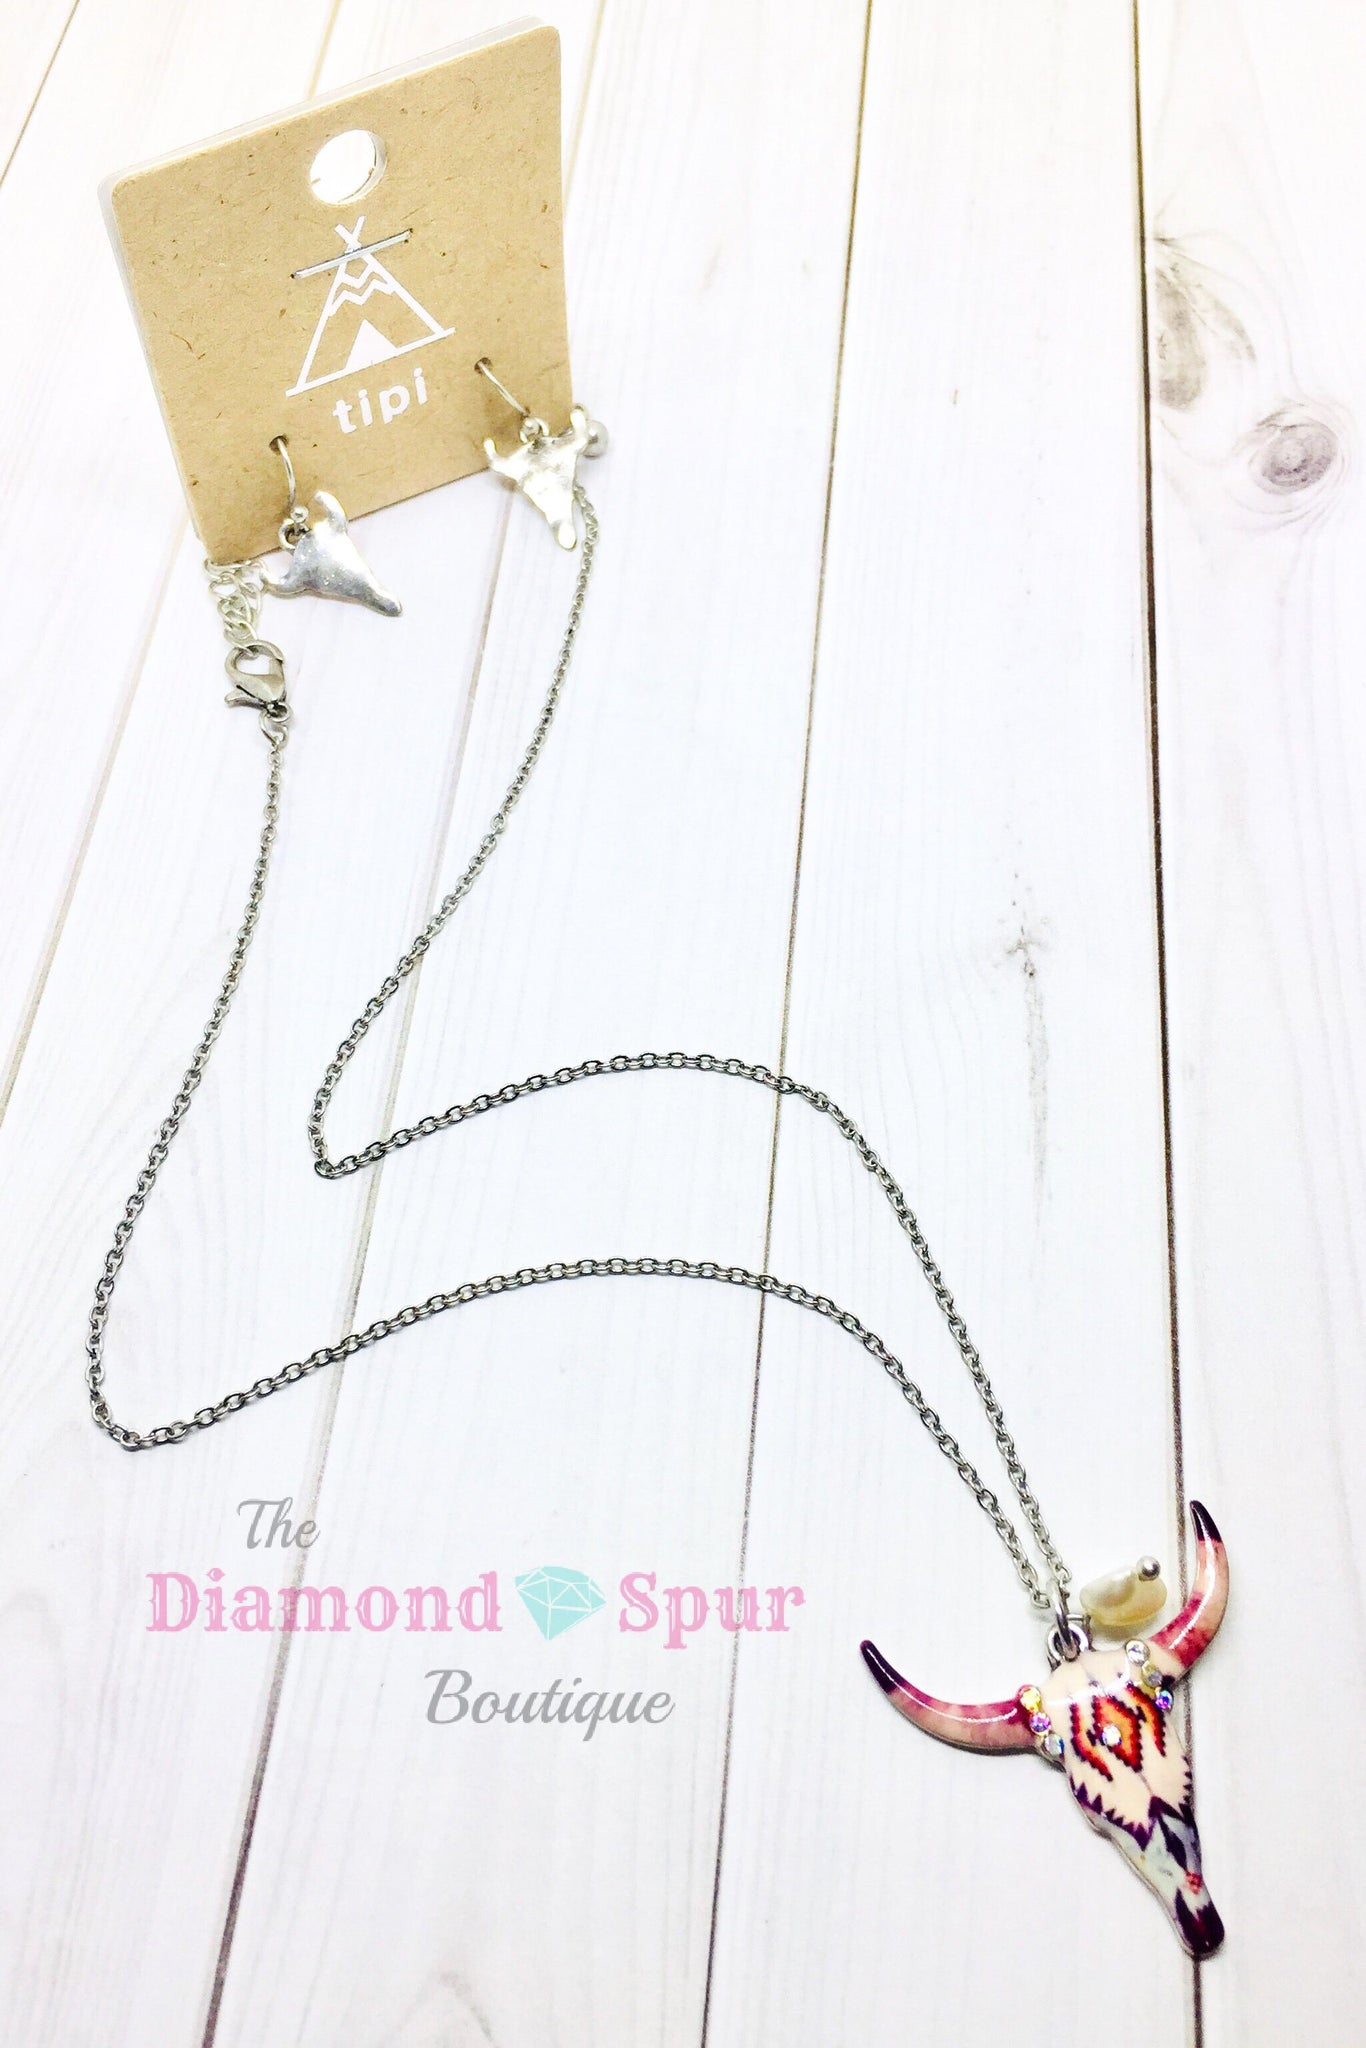 Longhorn Skull Necklace/Earring Set - The Diamond Spur Boutique